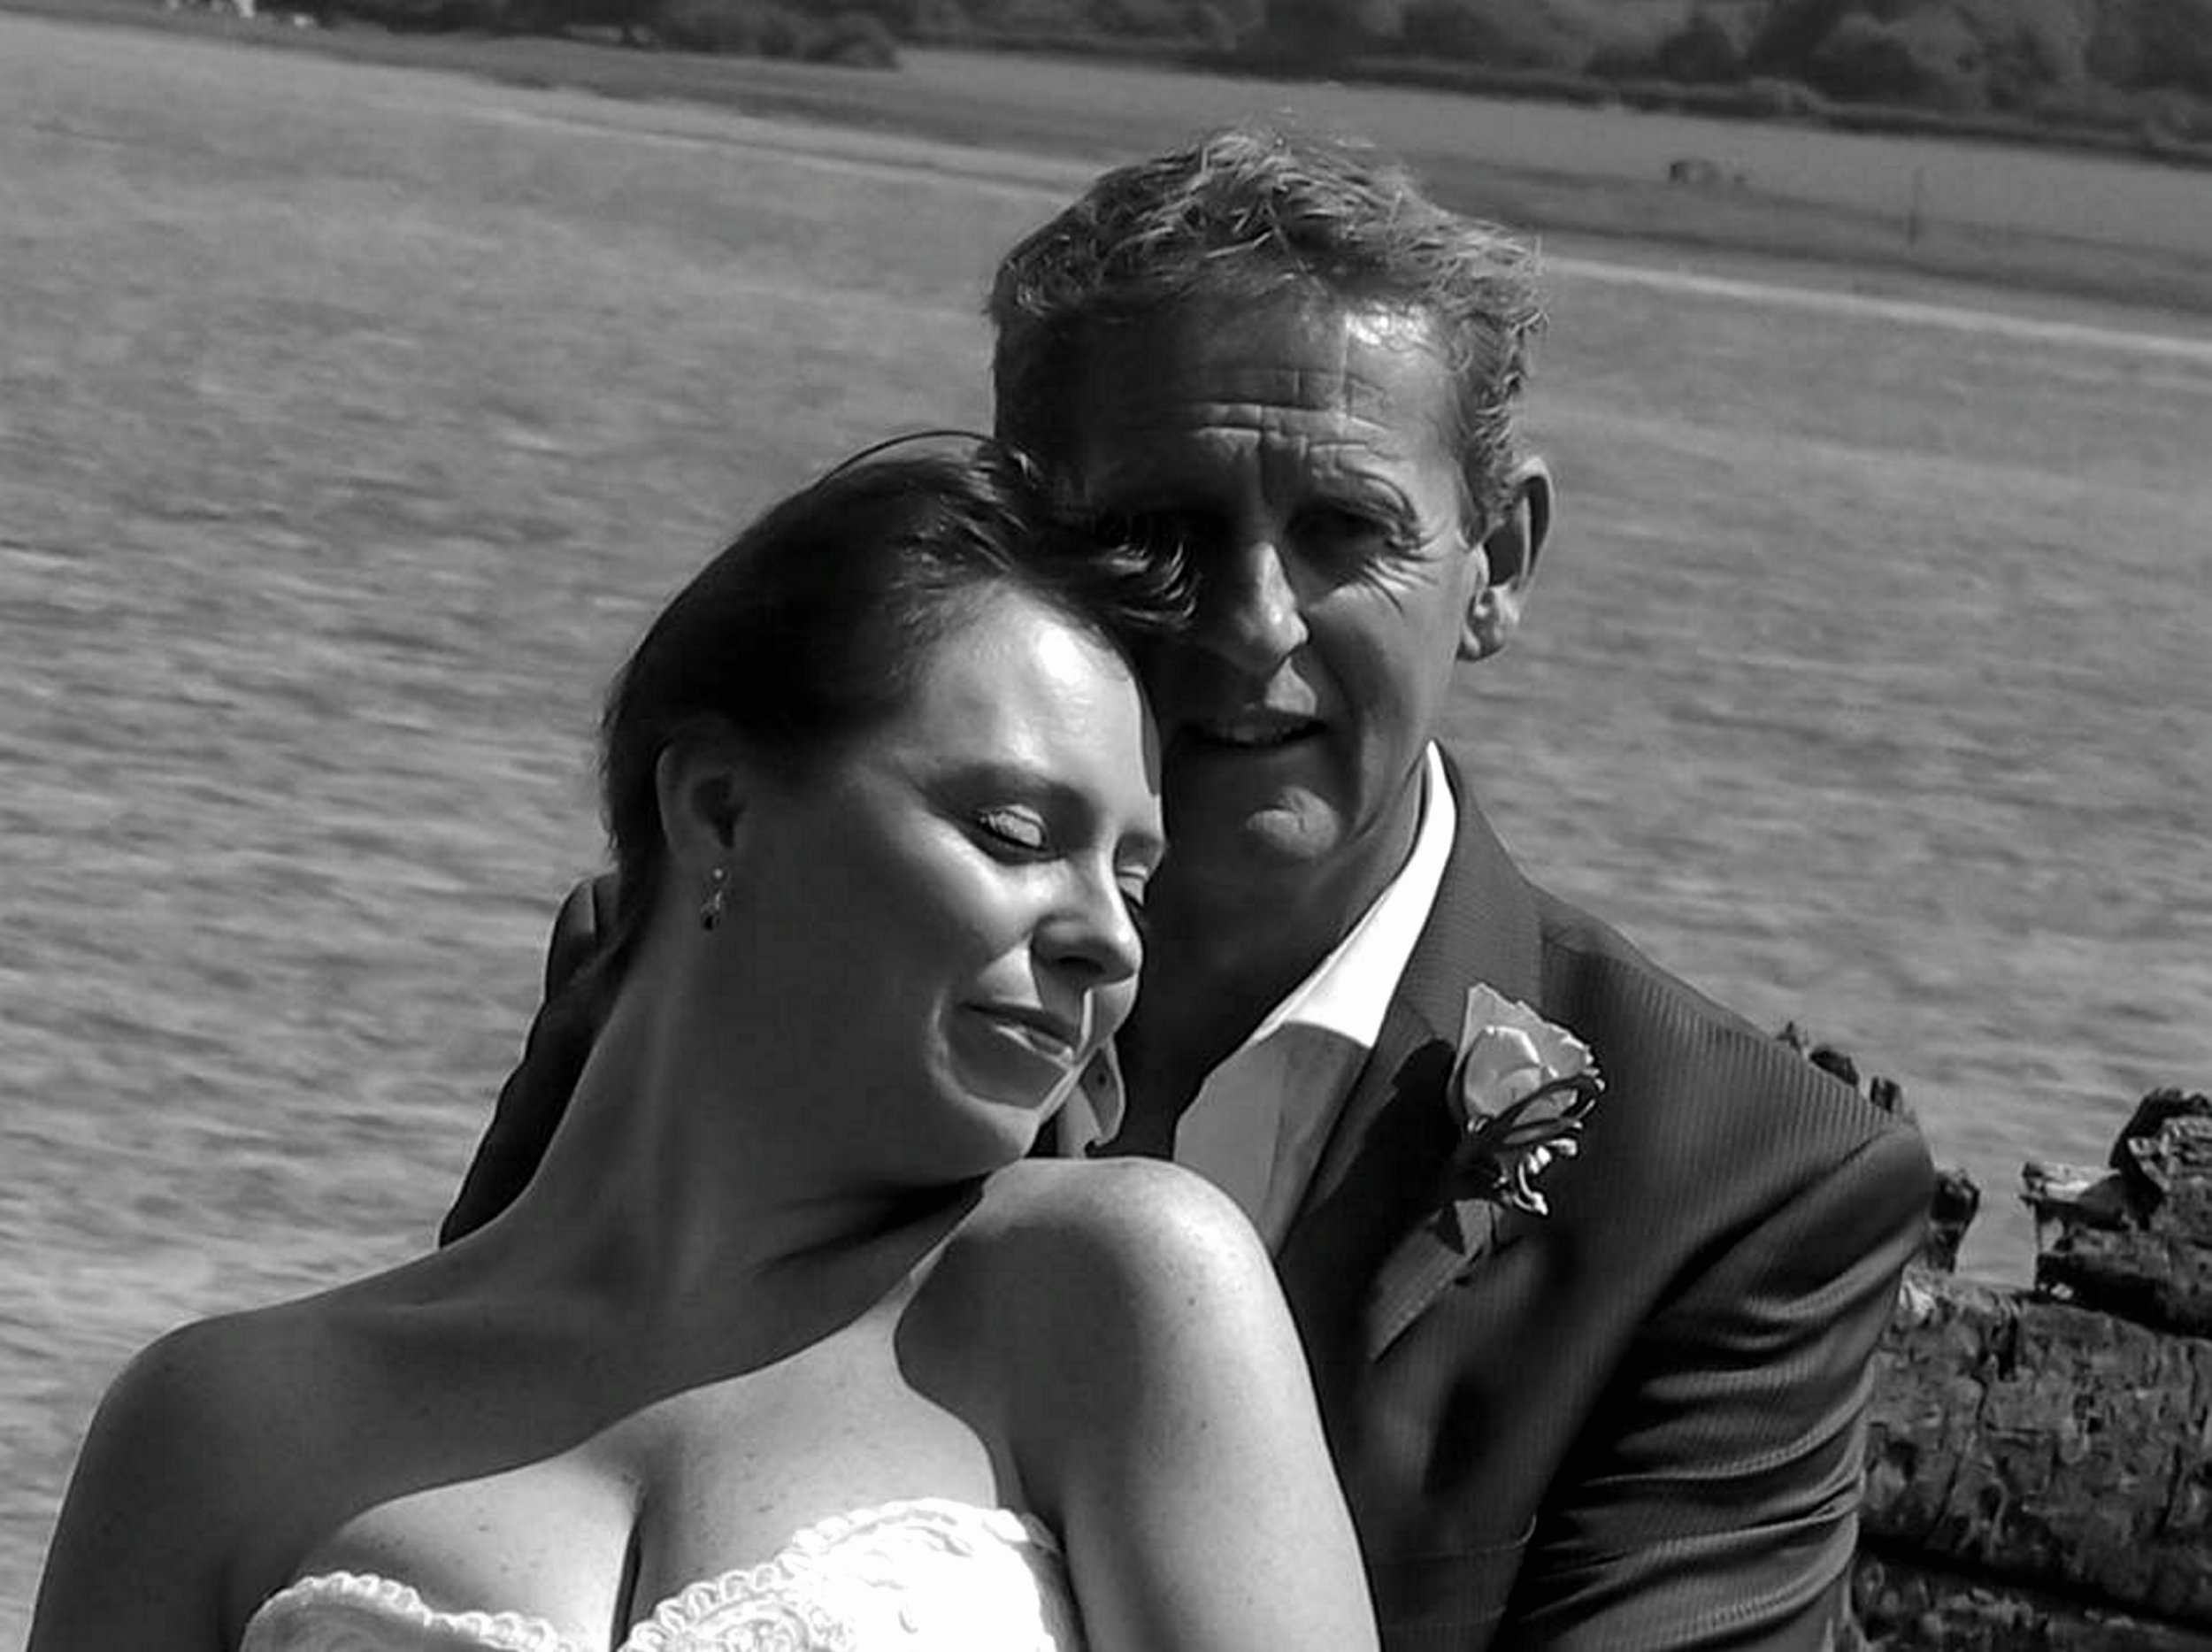 """Pictured: Andrew David McLeod-Baikie (R) with his second wife Helen (L) at their wedding, image found on open facbook page. Re: A man from Pembrokeshire, west Wales has been fined for bigamy after his estranged wife saw pictures of him marrying another woman on social media. Andrew David McLeod-Baikie, from Cresselly, pleaded guilty at Haverfordwest Magistrates' Court. He claimed he had gone through online divorce proceedings, but it emerged that it was never finalised. He was ordered by Magistrates to pay £400 in fines and a further £400 in costs. Prosecutor Sian Vaughan told the court that the defendant separated from his first wife in 2010, and the pair had four children together. However, the divorce proceedings that started in 2011, were never finalised. Ms Vaughan said: """"The first wife was informed by a friend that she had seen pictures of the wedding of the defendant and another female. """"He informed her he had divorced her online two years previously."""" Mark Layton, defending, said his client had paid £600 to deal with his divorce online, had received paperwork and understood he was divorced. Mr Layton added: """"He presented the paperwork to the vicar who married them. It was quite a large function, and he was not secretive about it. """"He should have paid more attention to the paperwork, because clearly the decree absolute had not been granted."""""""